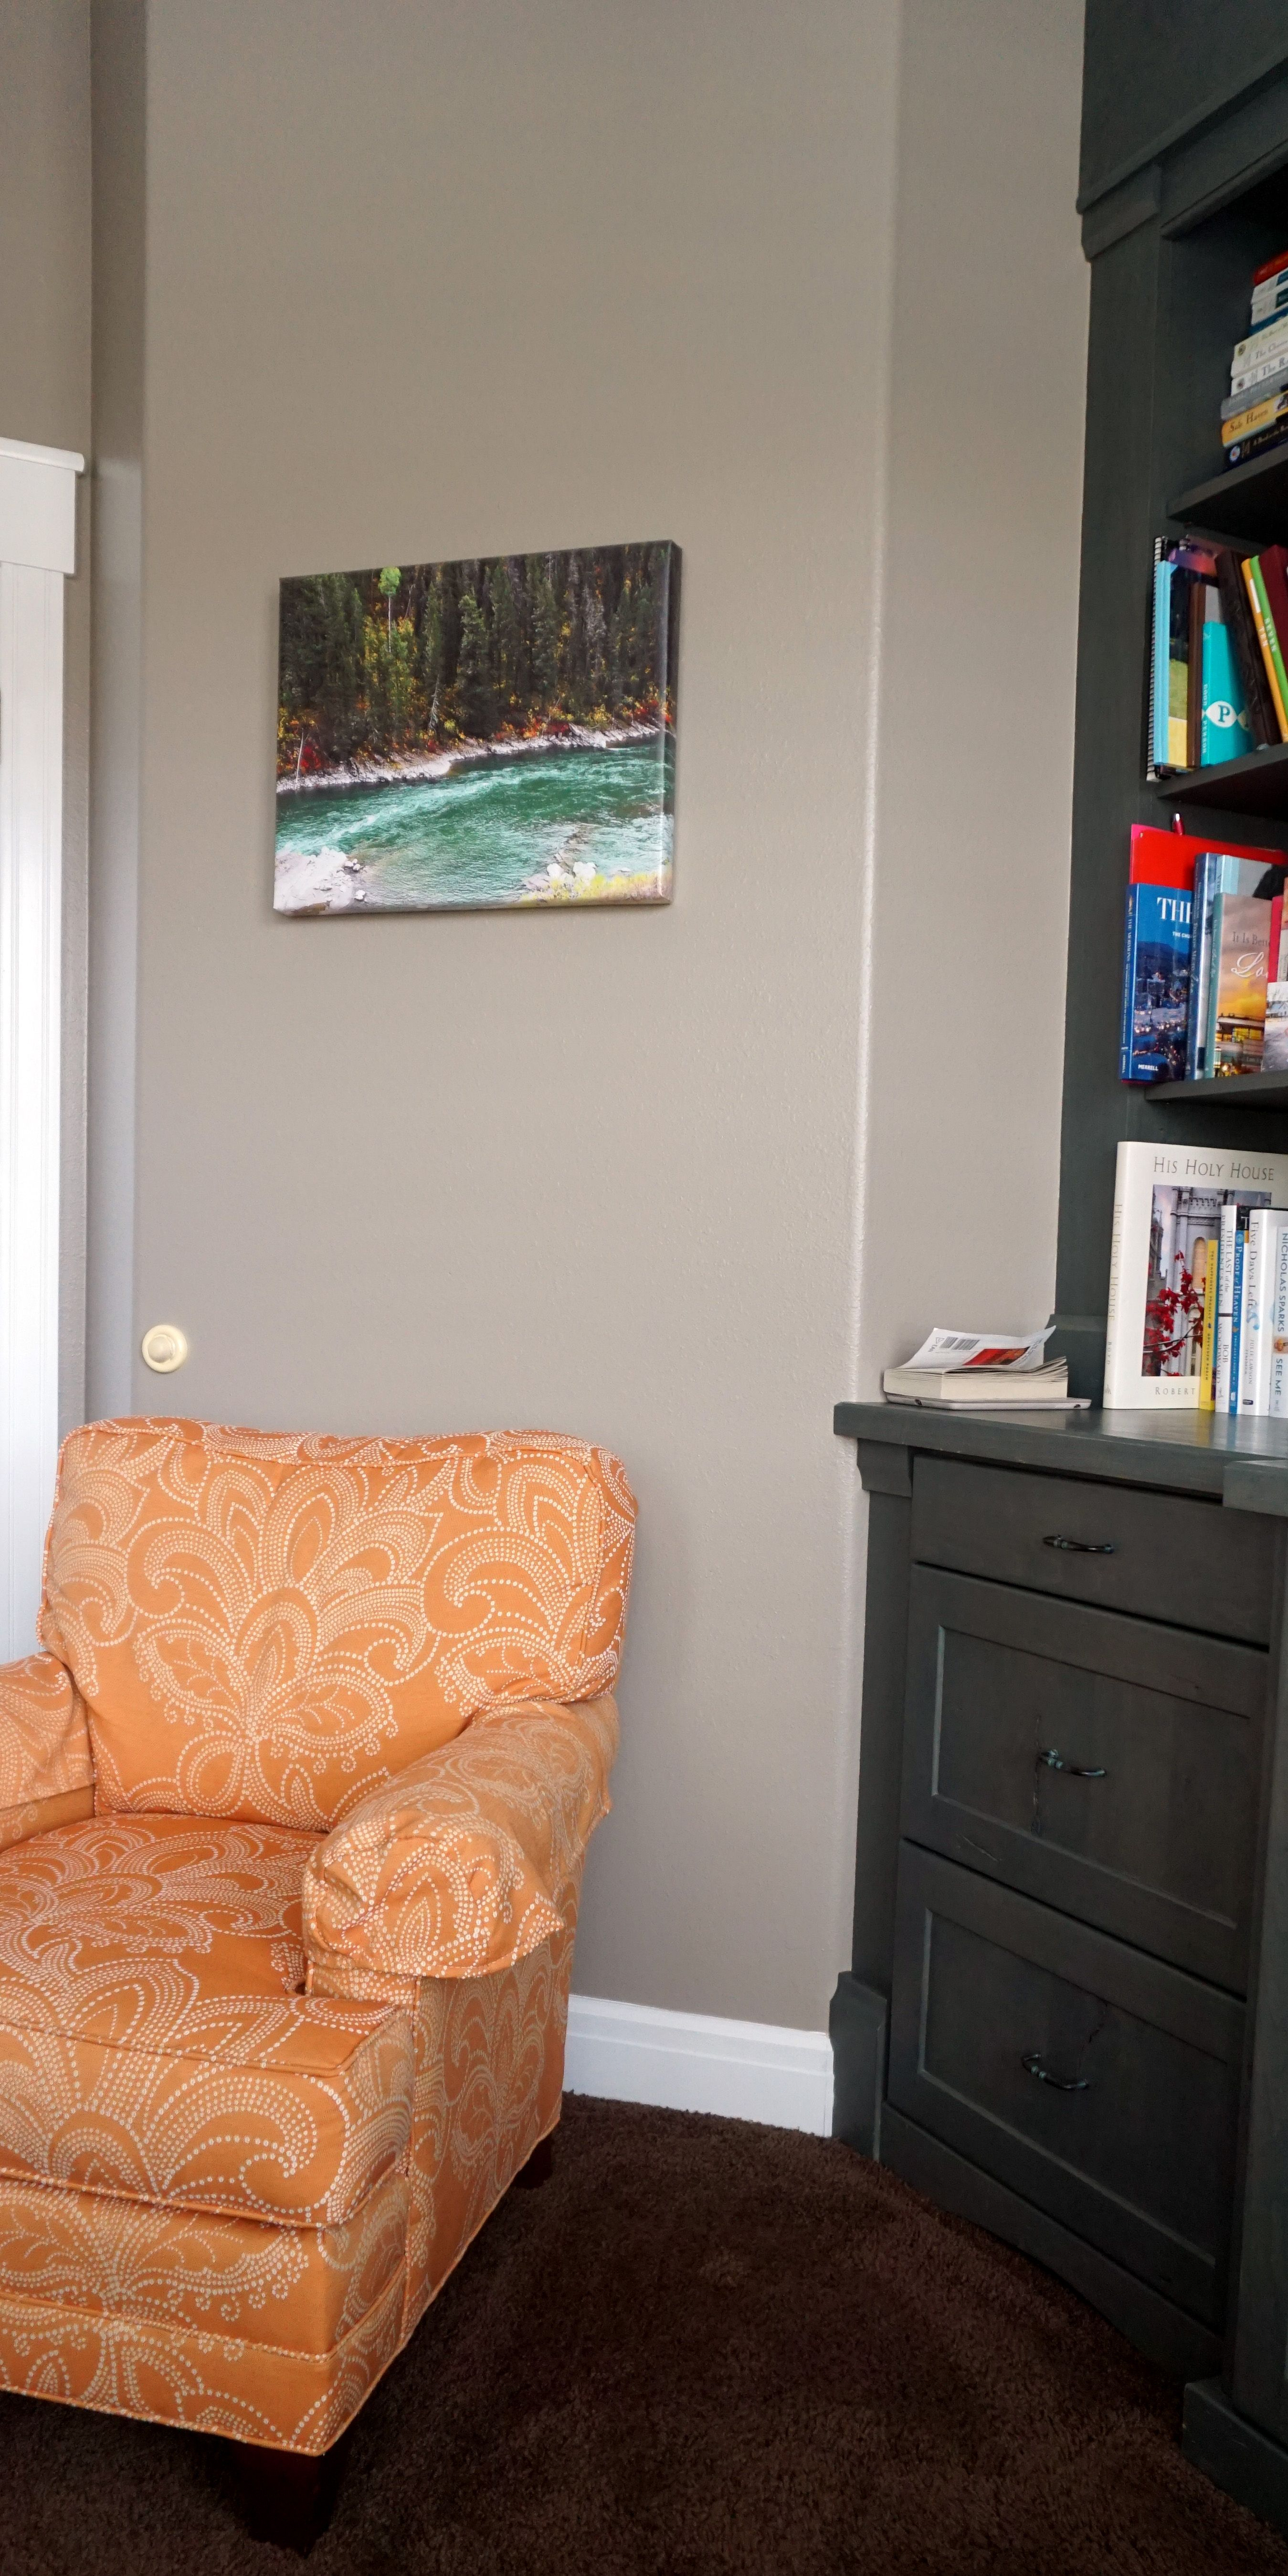 See that pretty canvas print? It's a wall space heater